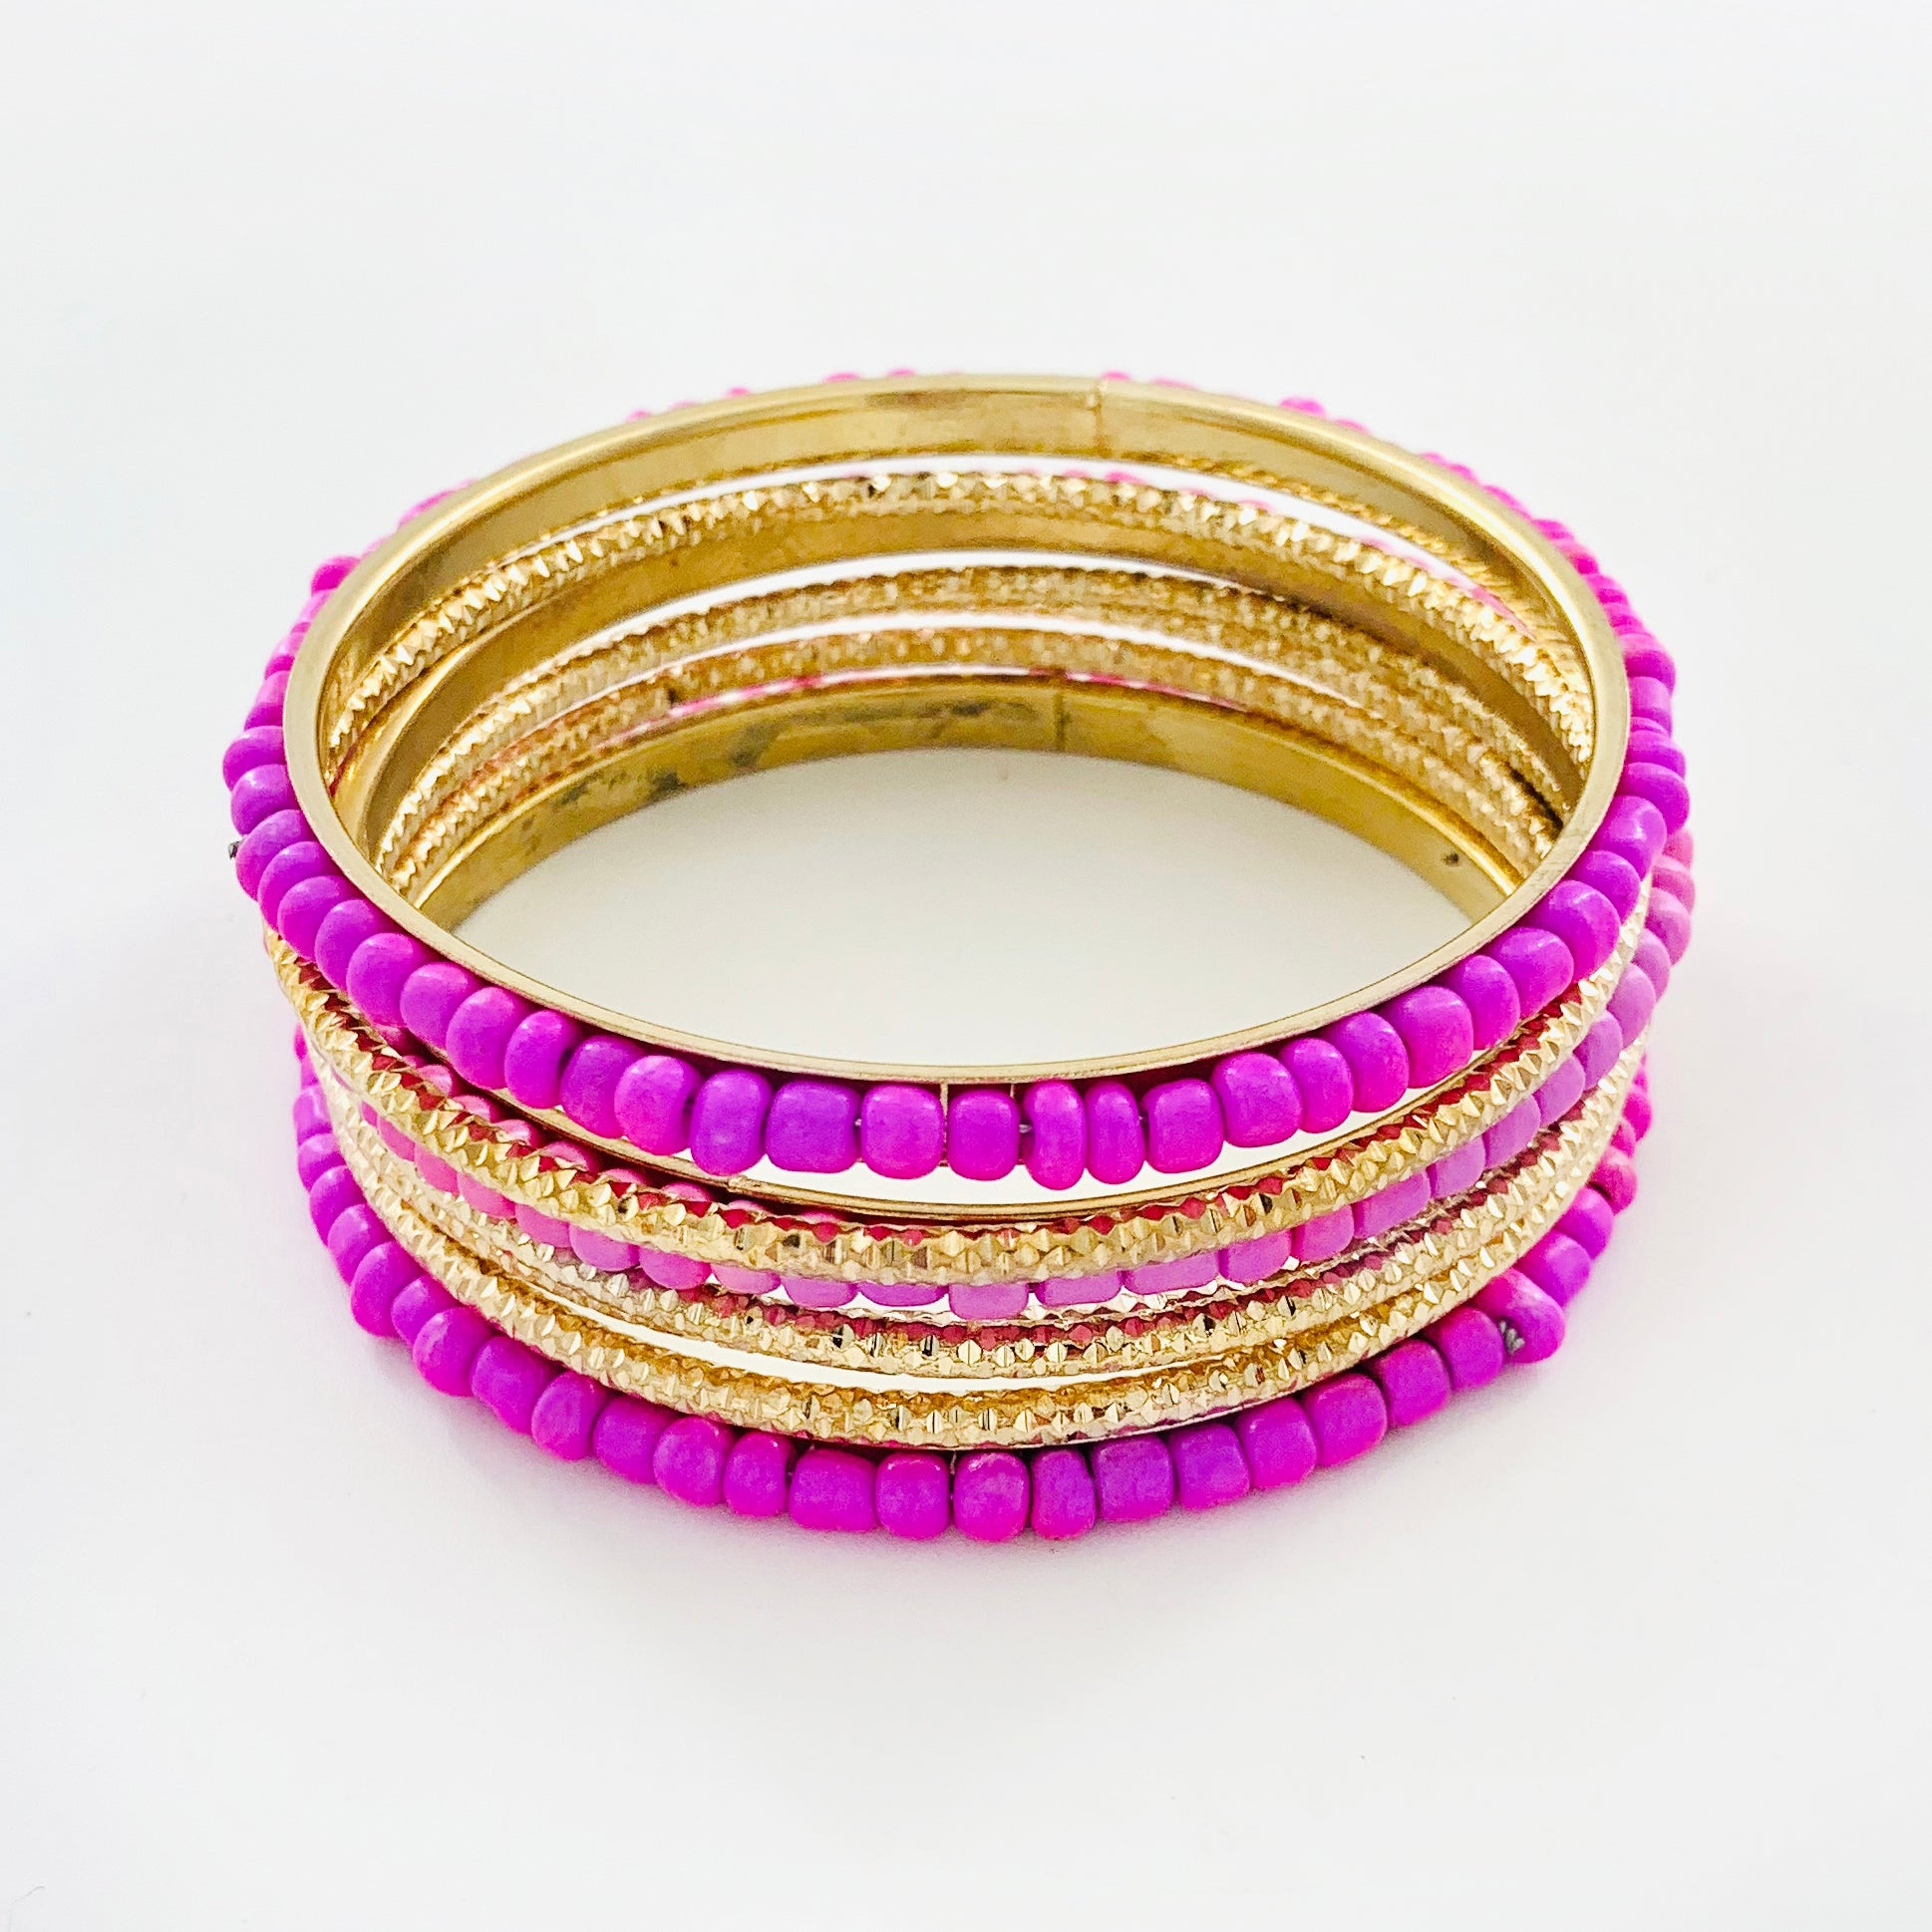 Violet beads and Gold ethnic bangles